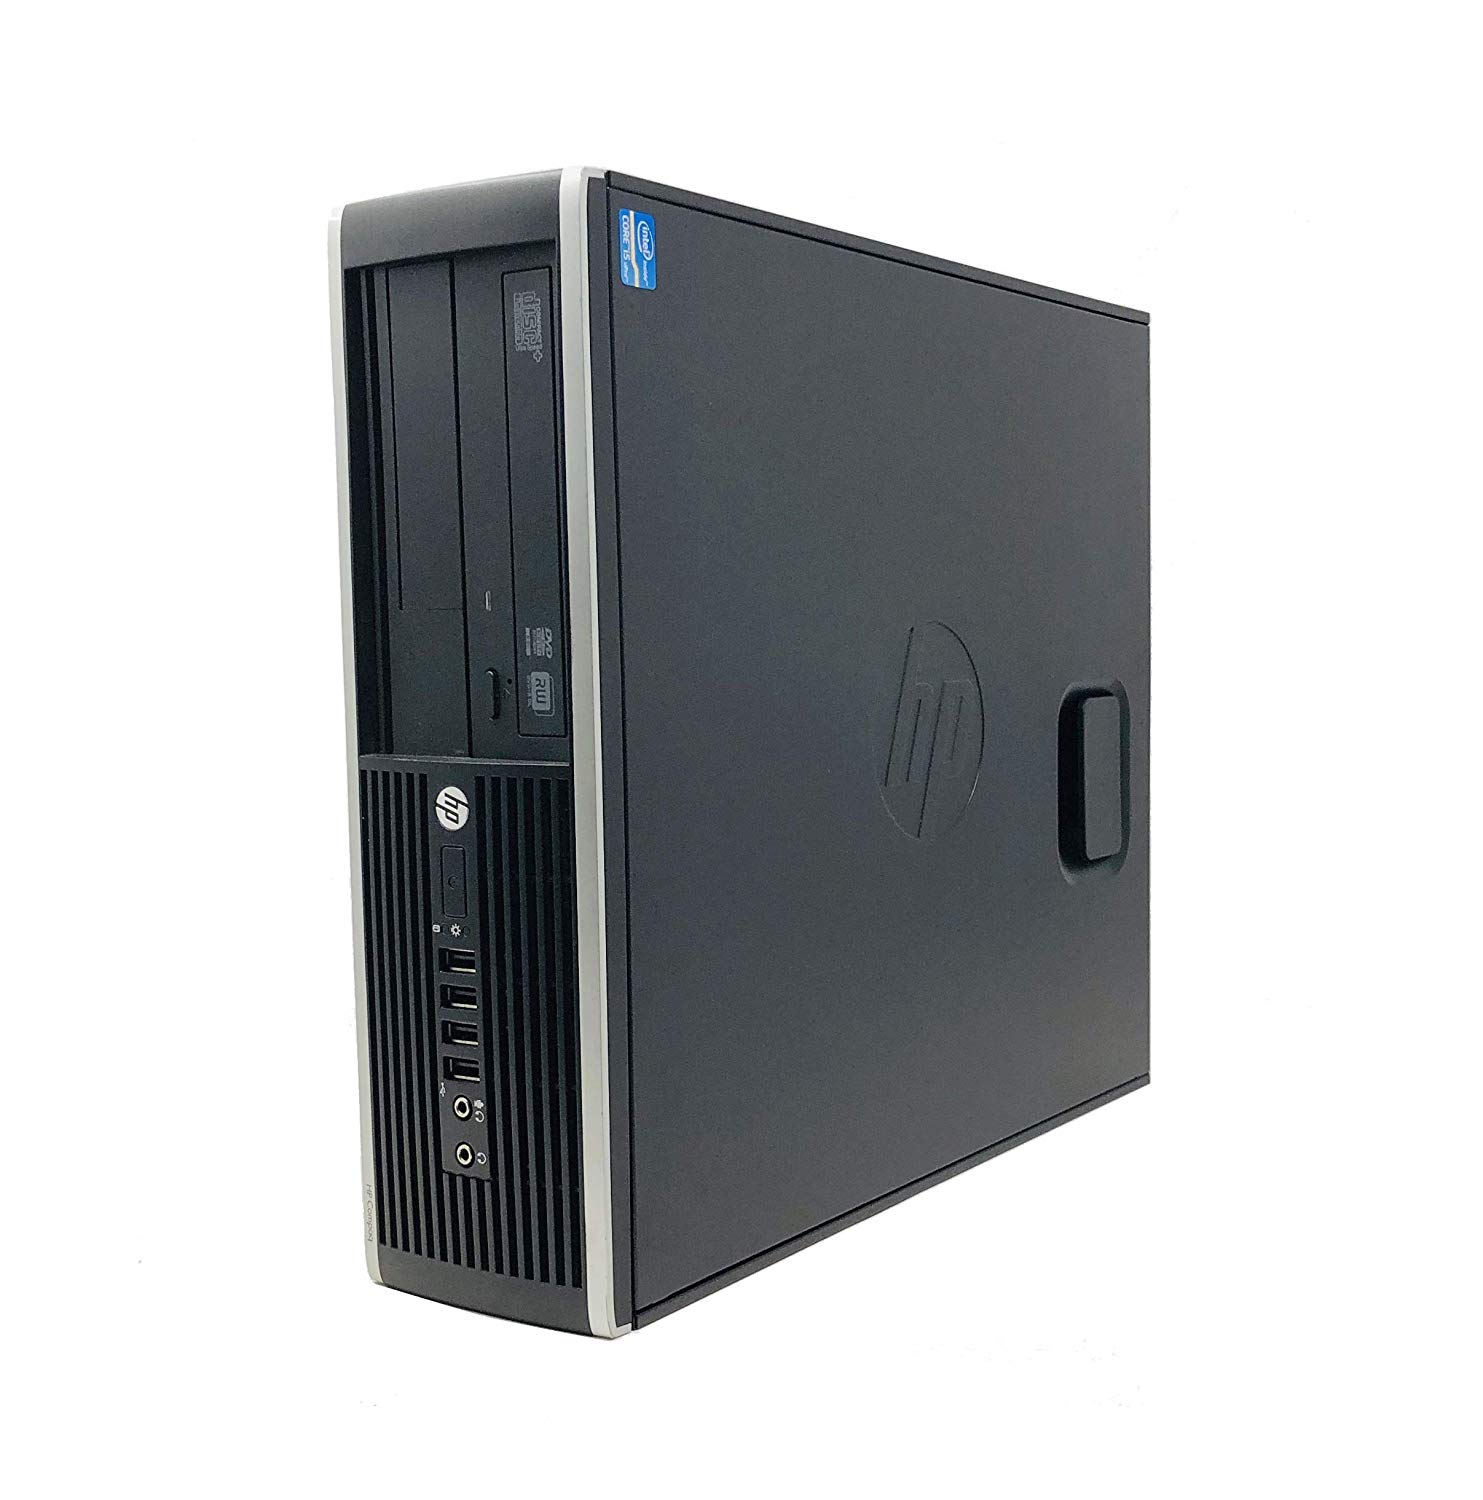 Hp Elite 8200 - Ordenador de sobremesa (<font><b>Intel</b></font> <font><b>i5</b></font>-<font><b>2400</b></font>, 8GB RAM, Disco SSD de 240GB , Windows 10 PRO ) - Negro (Reacondicionado) image